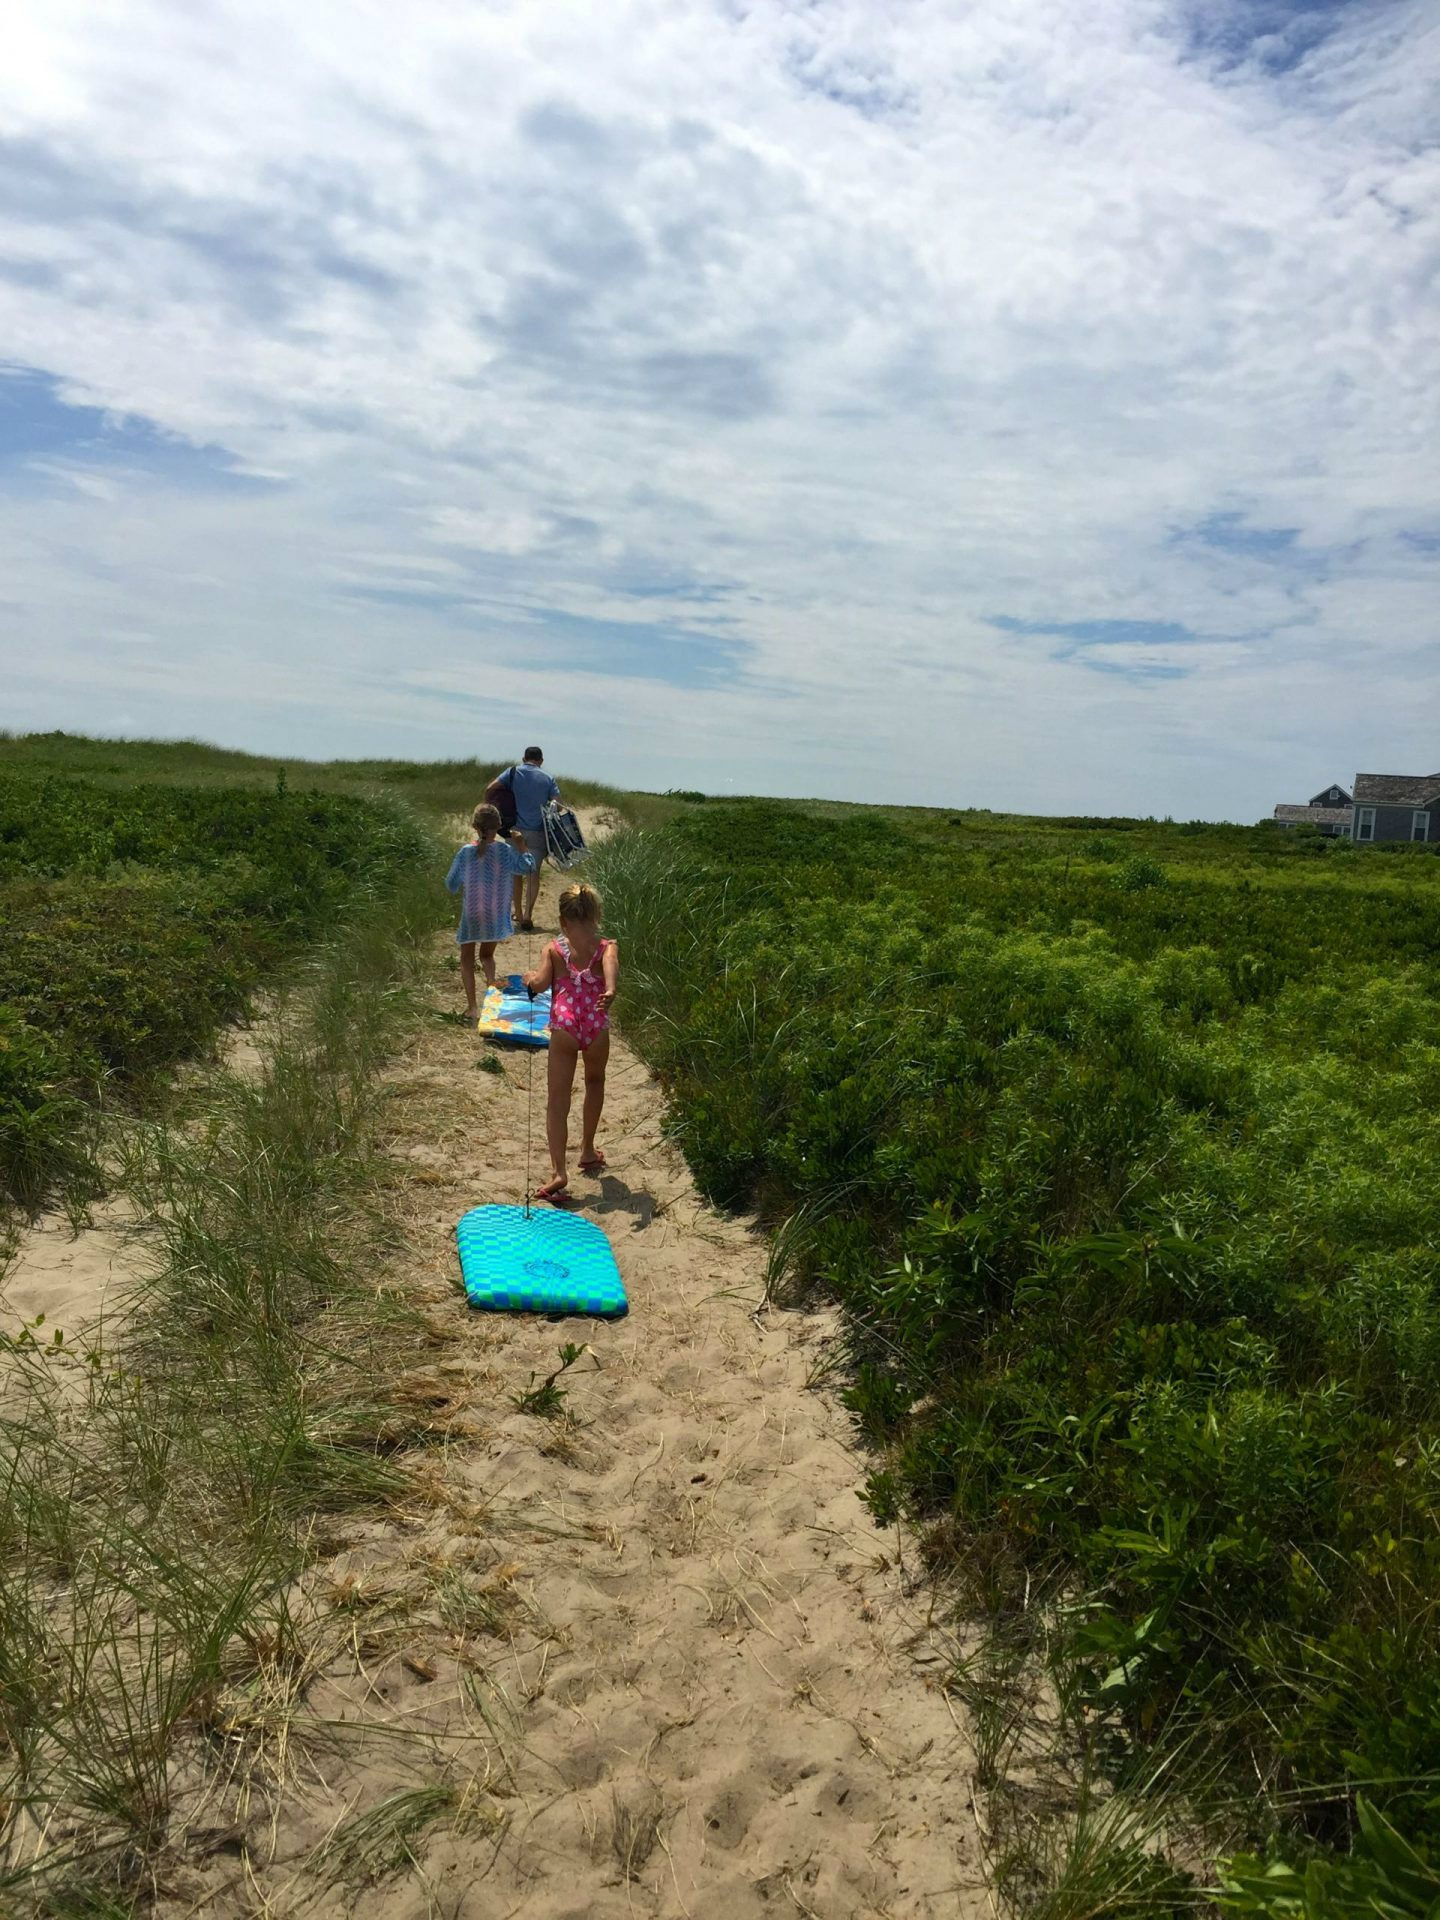 Walking to the beach in Nantucket.